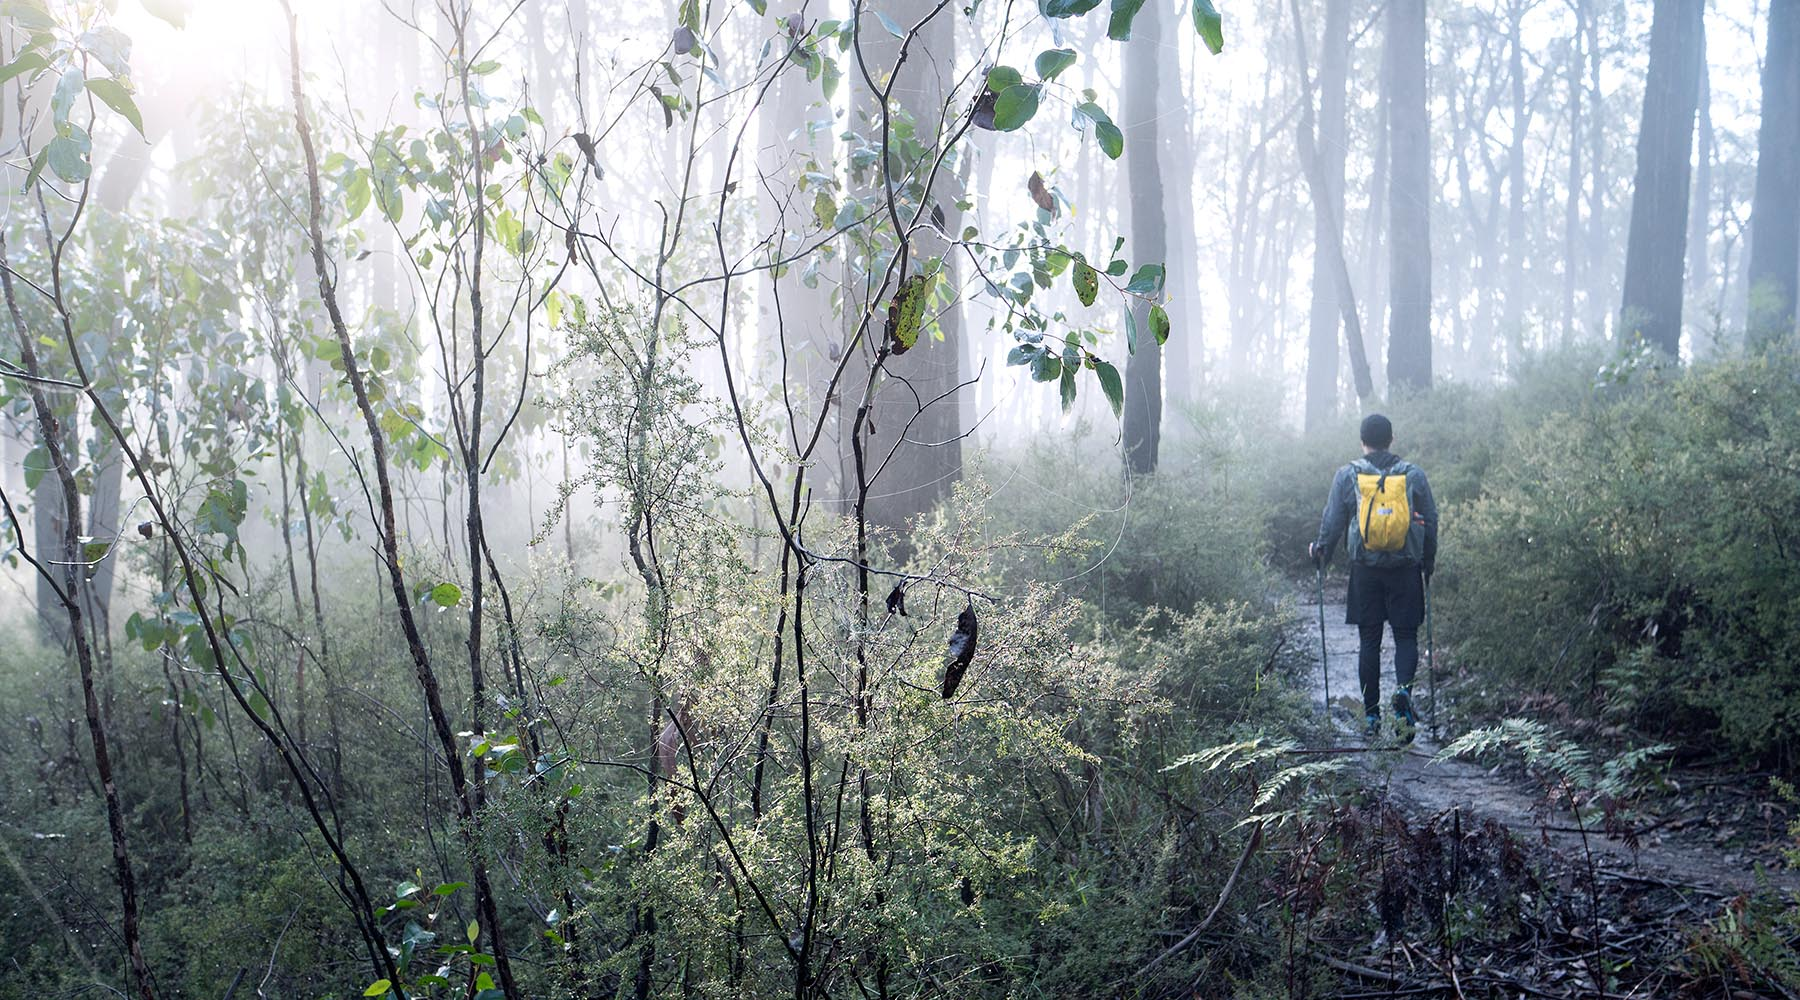 A hiker walking through a foggy eucalyptus forest on an early. The bushwalker is carrying a yellow grey backpack made in Australia by OrangeBrown.